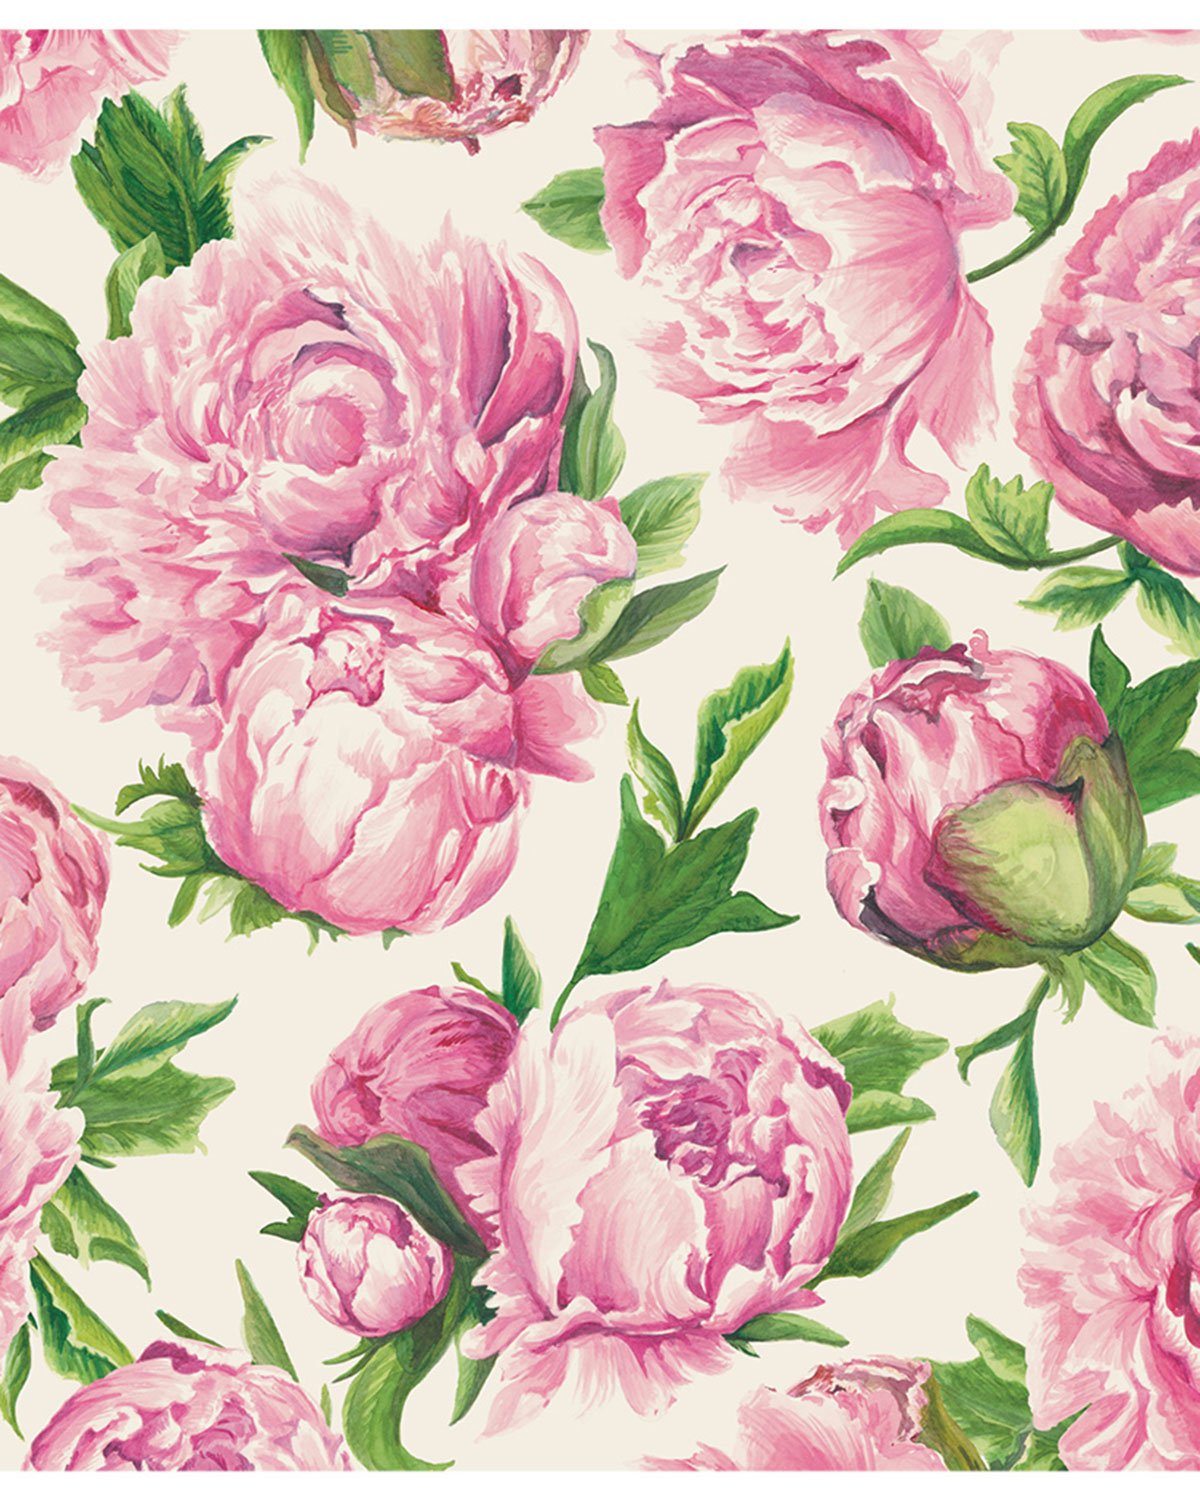 Hester & Cook Peonies in Bloom Placemats